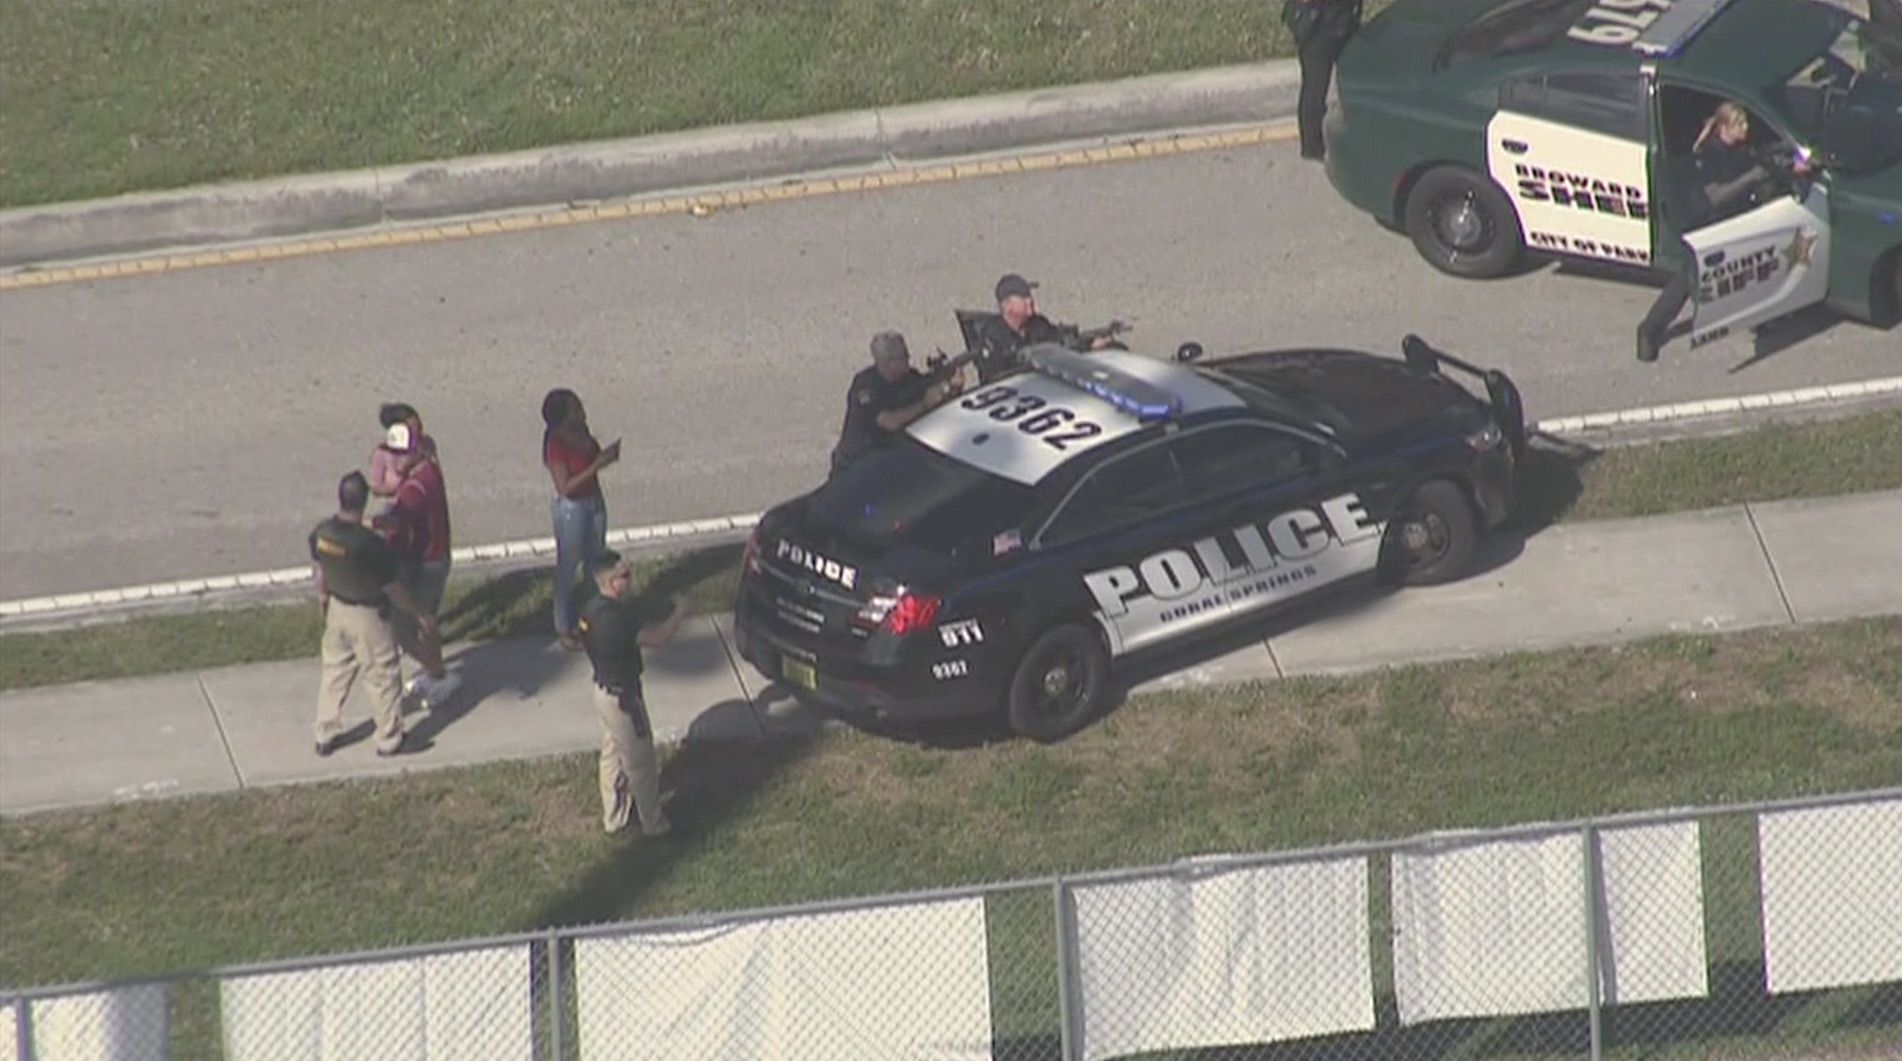 "<div class=""meta image-caption""><div class=""origin-logo origin-image kabc""><span>kabc</span></div><span class=""caption-text"">Authorities are responding to reports of shots fired at a Florida high school. (WSVN via CNN)</span></div>"